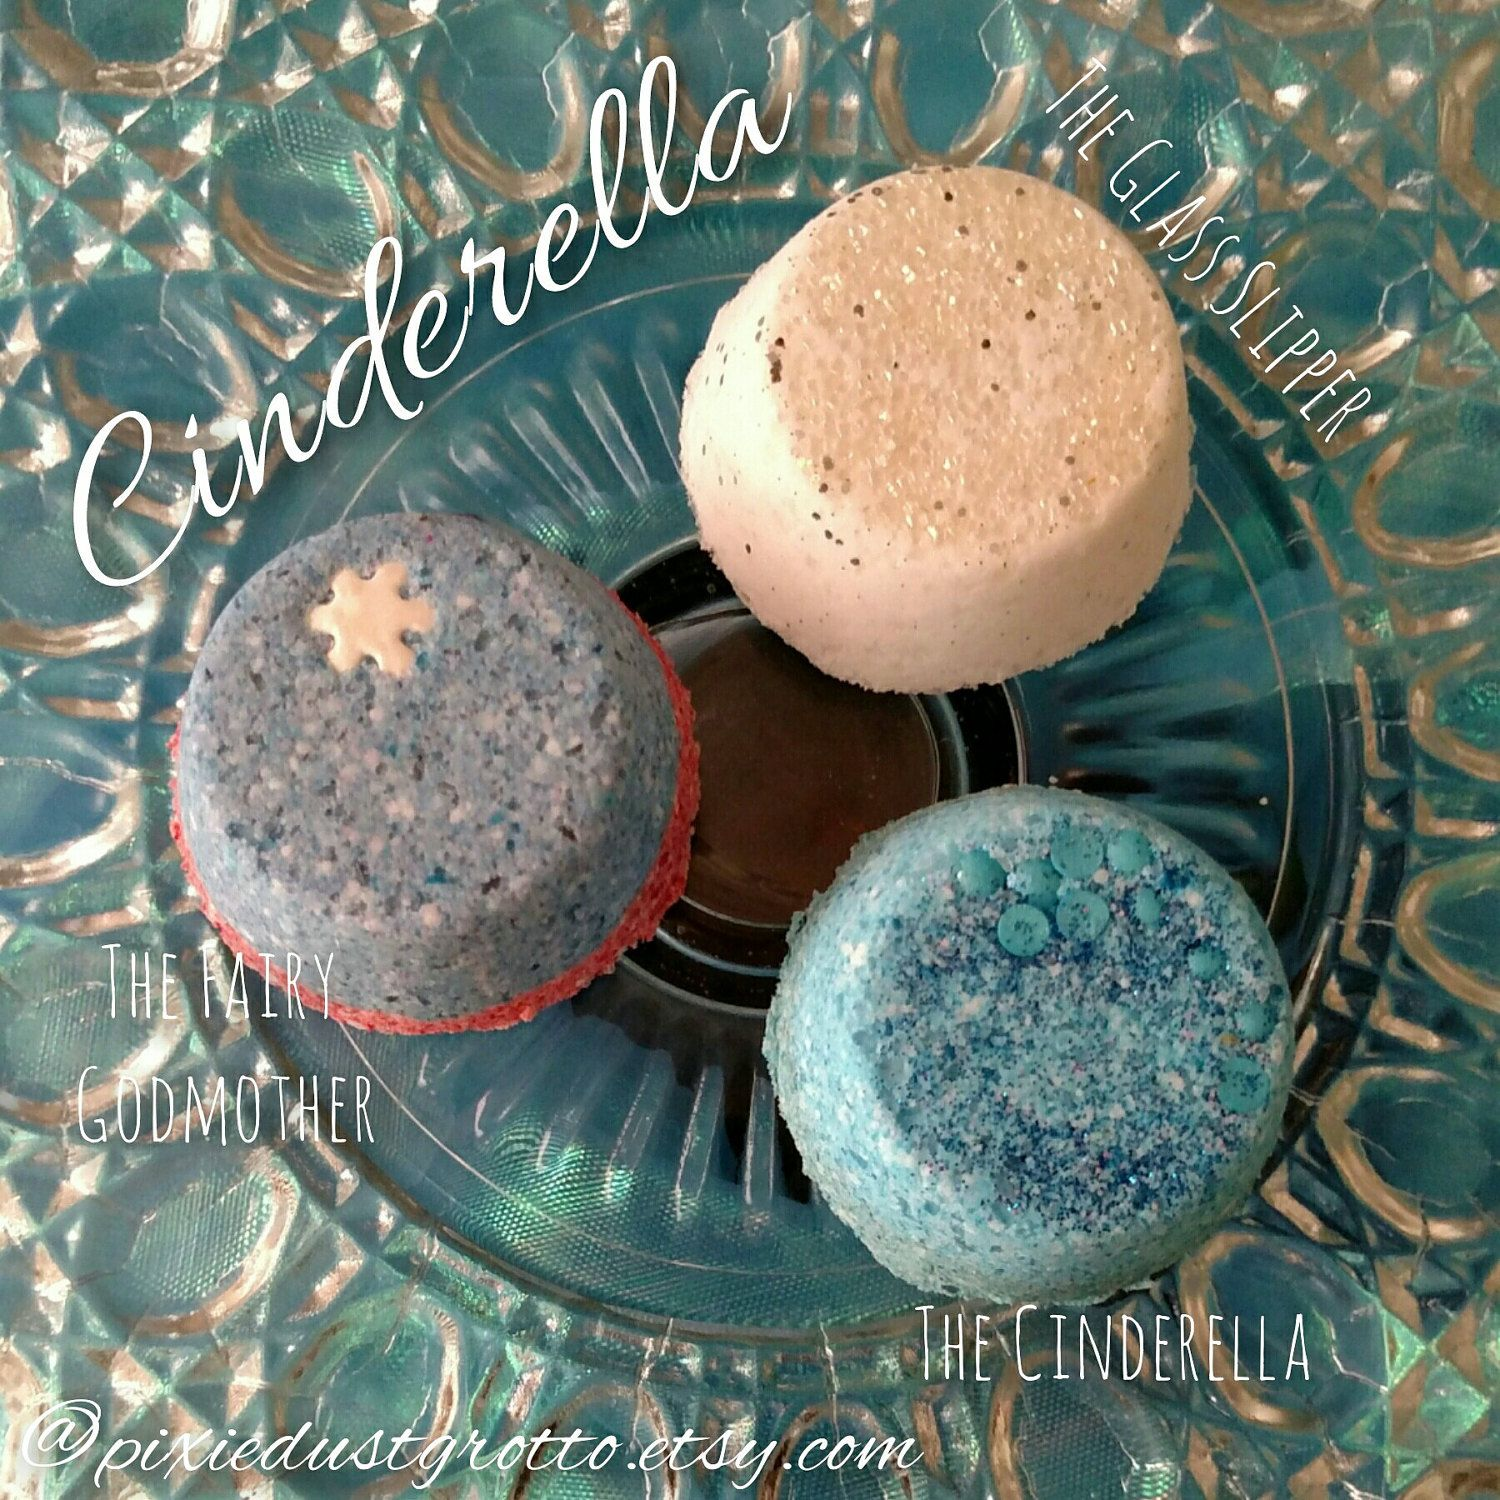 Next Up for Release Our Disney Princess Cinderella Inspired Bath